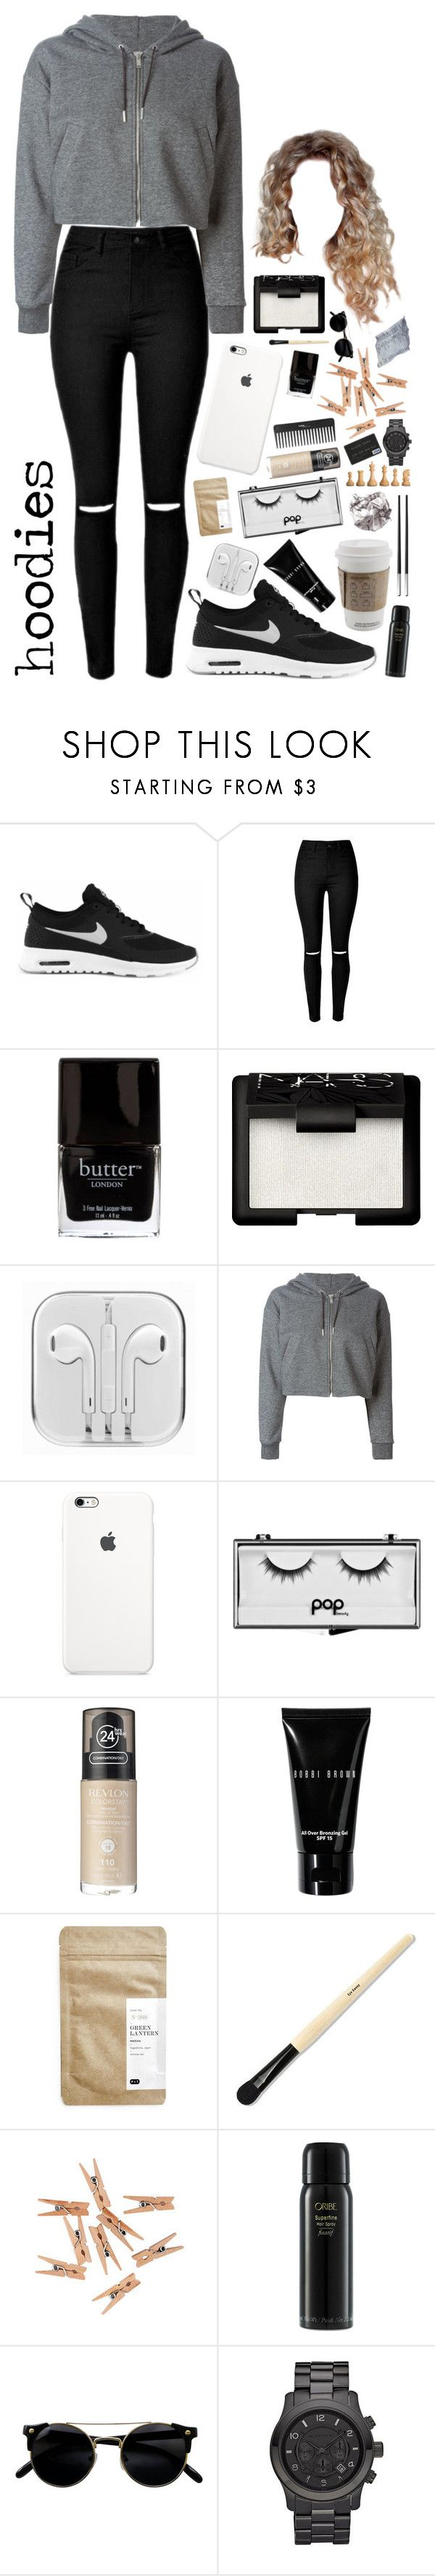 """Sporty Chic"" by alexfreyberg on Polyvore featuring NIKE, NARS Cosmetics, Golden Goose, Pop Beauty, Revlon, Bobbi Brown Cosmetics, Paper & Tea, Oribe, Michael Kors and Sephora Collection"